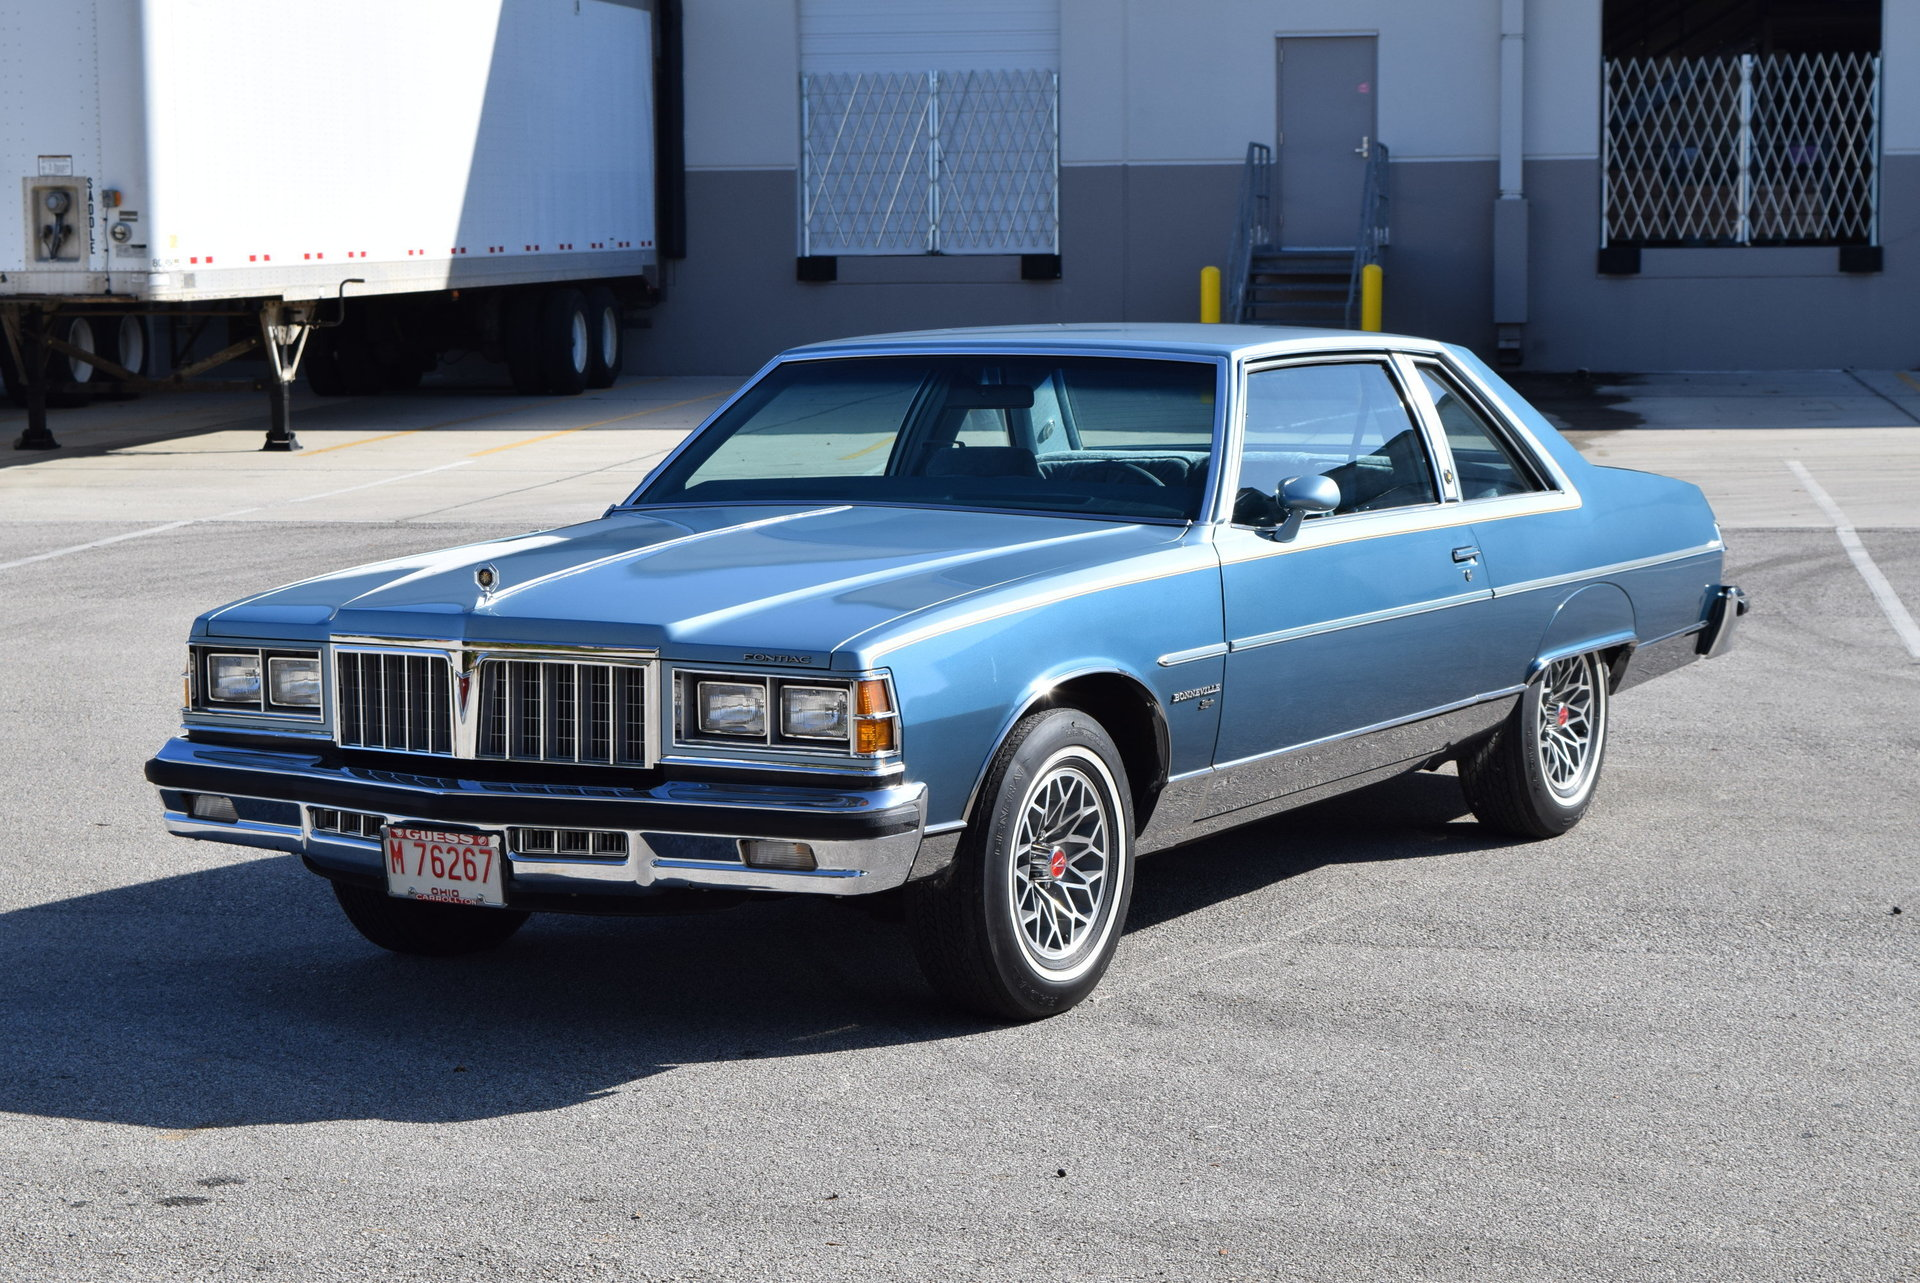 1978 pontiac bonneville brougham for sale 80500 mcg. Black Bedroom Furniture Sets. Home Design Ideas